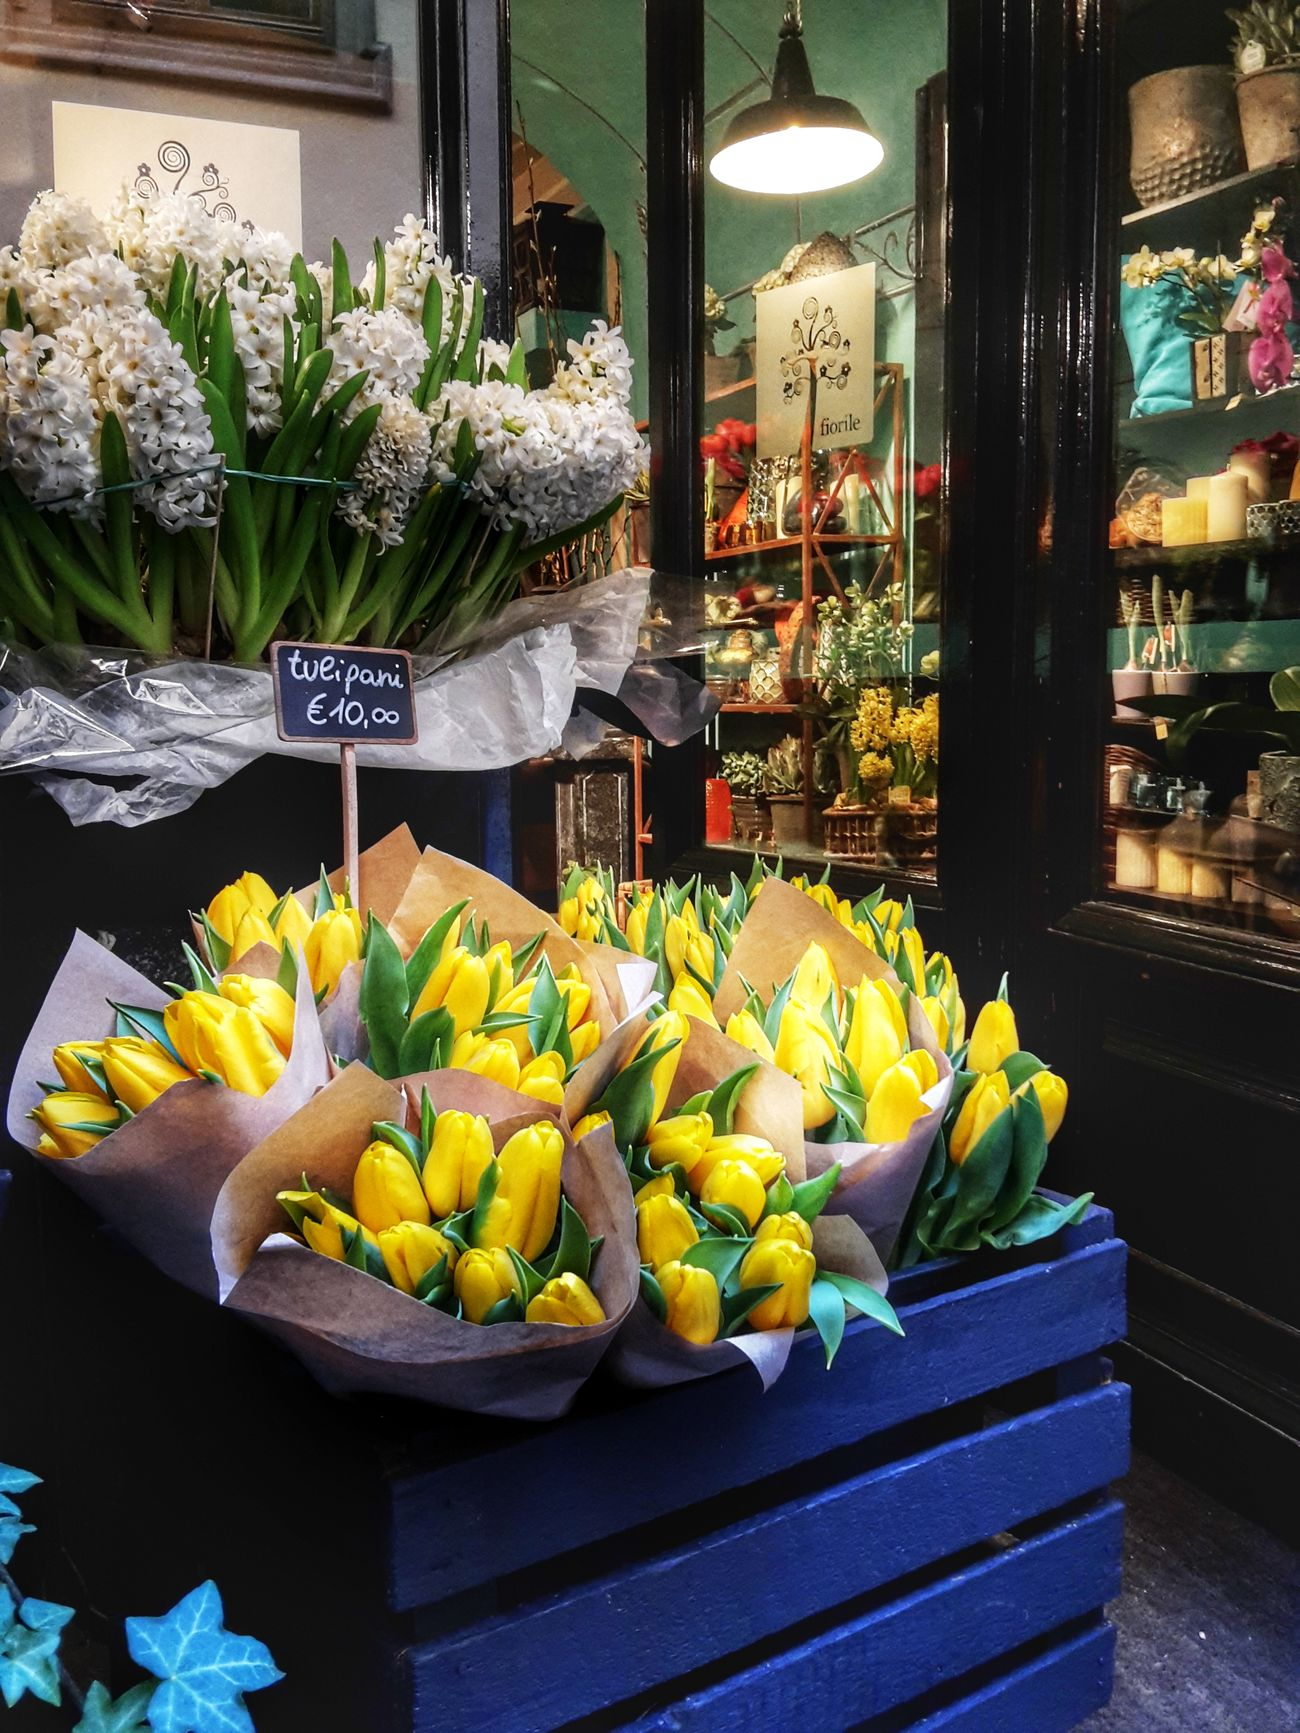 I ♡ flower shops Spring Bulbs Flower Tulips Hyacinths In Bloom Freshness Yellow Colour Vibrant Colours Flower Shop Flower Arrangement Shop Window Flowers On Display Beauty In Nature